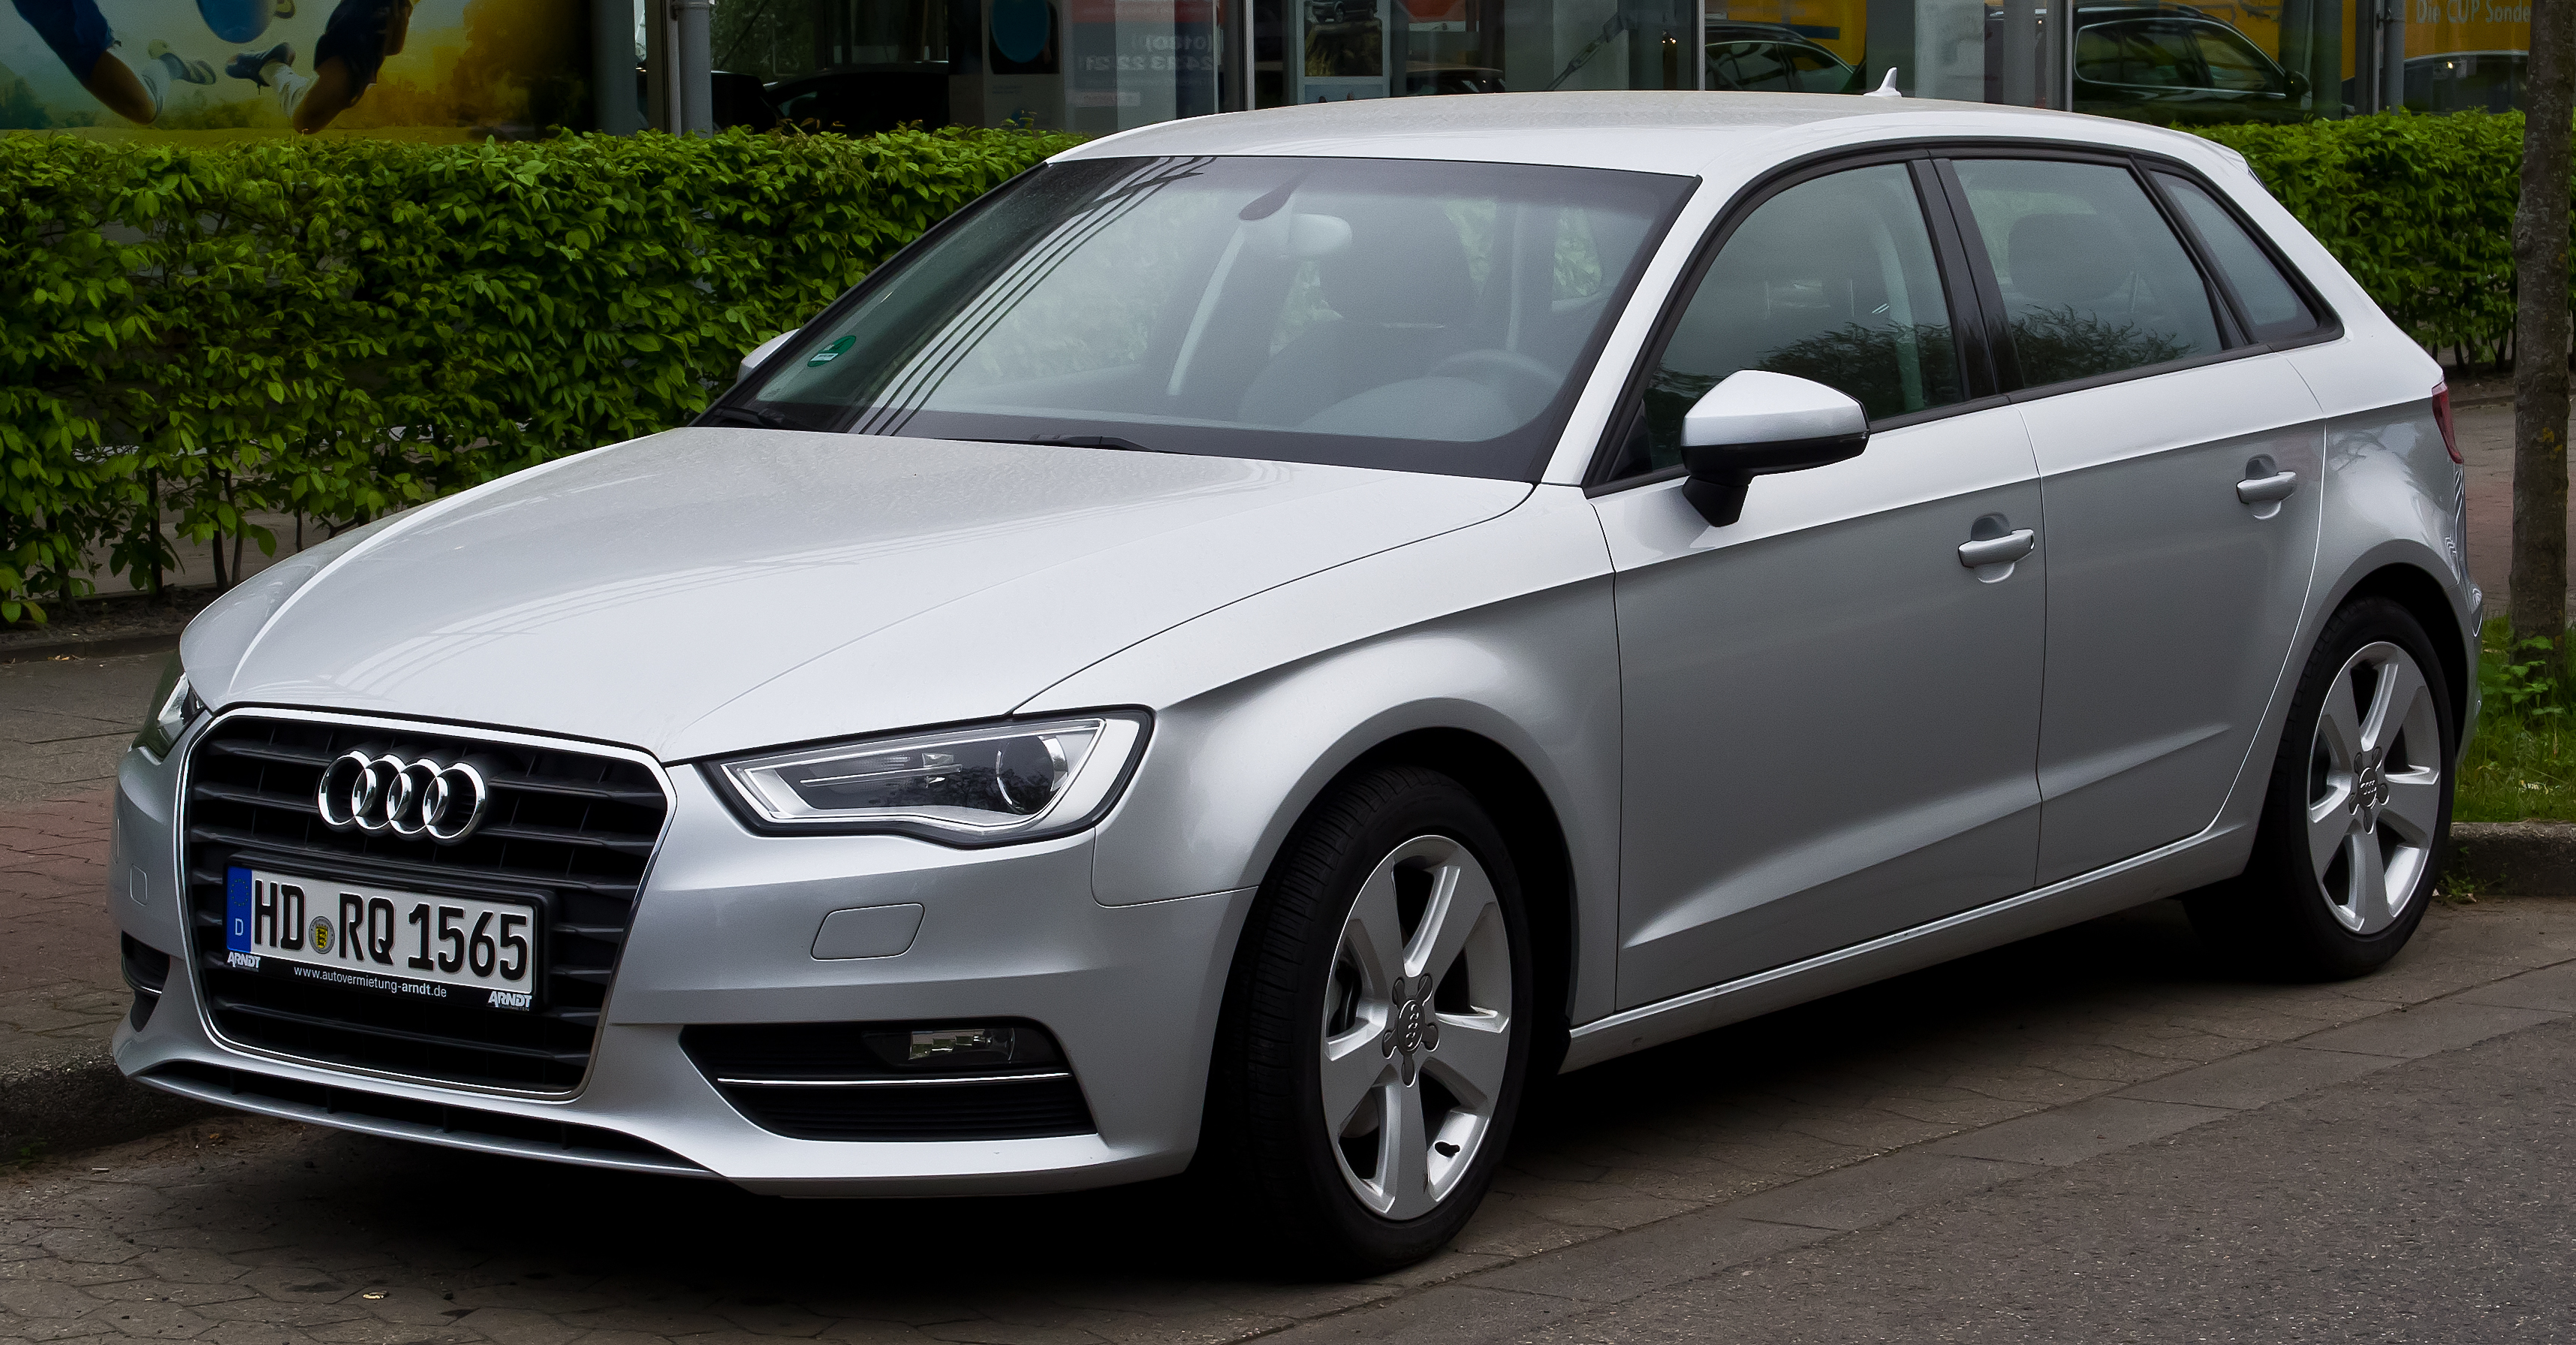 file audi a3 sportback 1 6 tdi ambition 8v frontansicht 6 april 2014 d. Black Bedroom Furniture Sets. Home Design Ideas